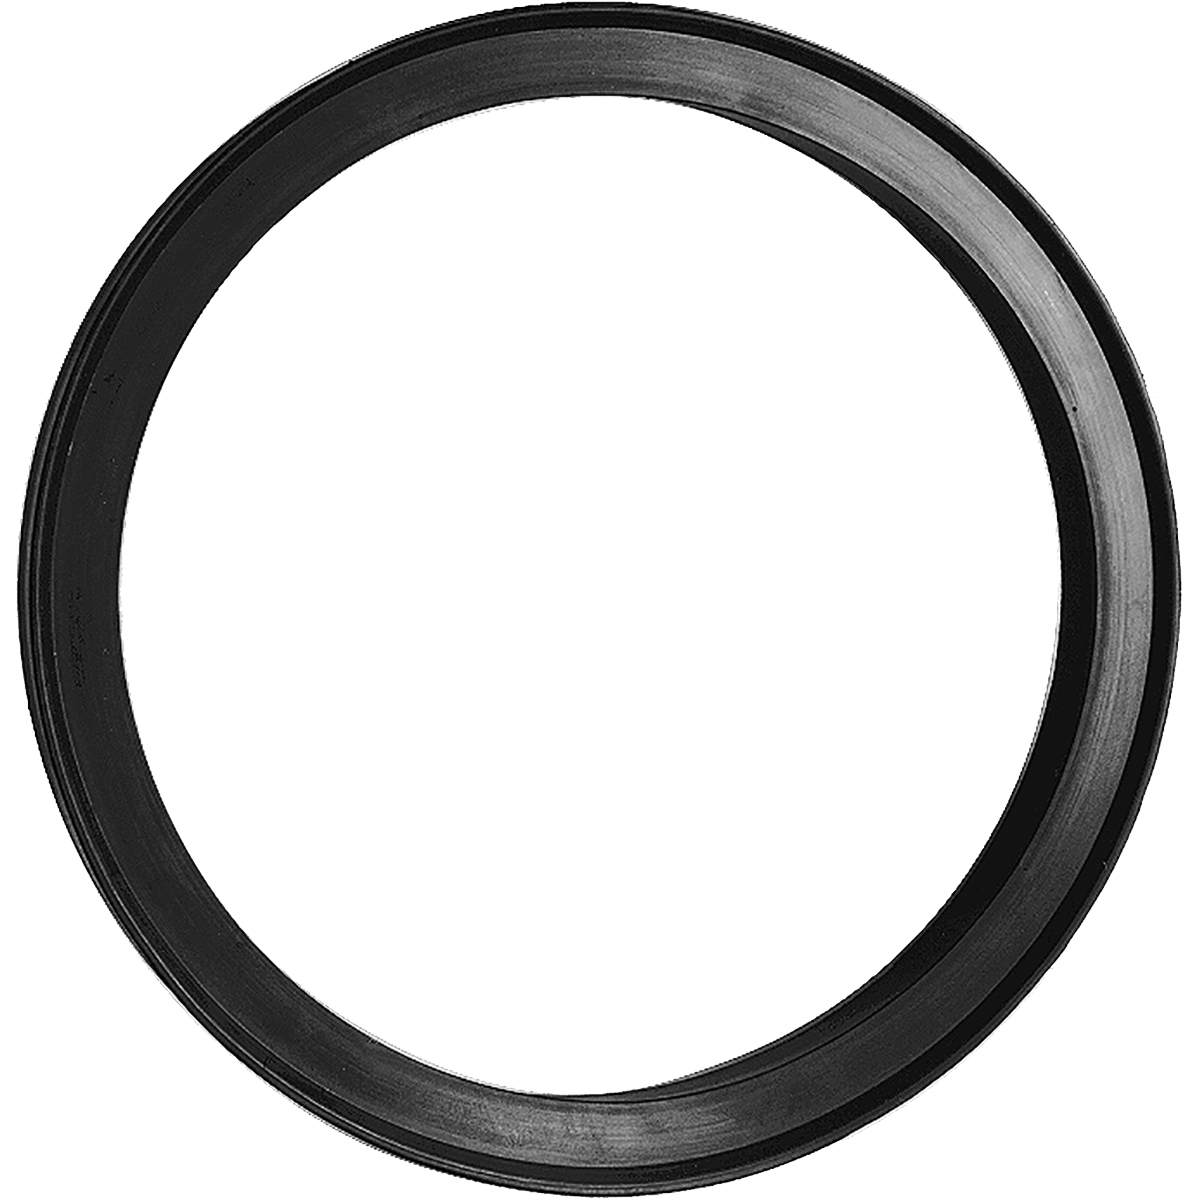 MJ GASKETS & BACKING RINGS - Nominal Sizes2 - 24 inchesPipe Compatibility Cast Iron Pipe, Steel, PVC, SDR35 & PIP